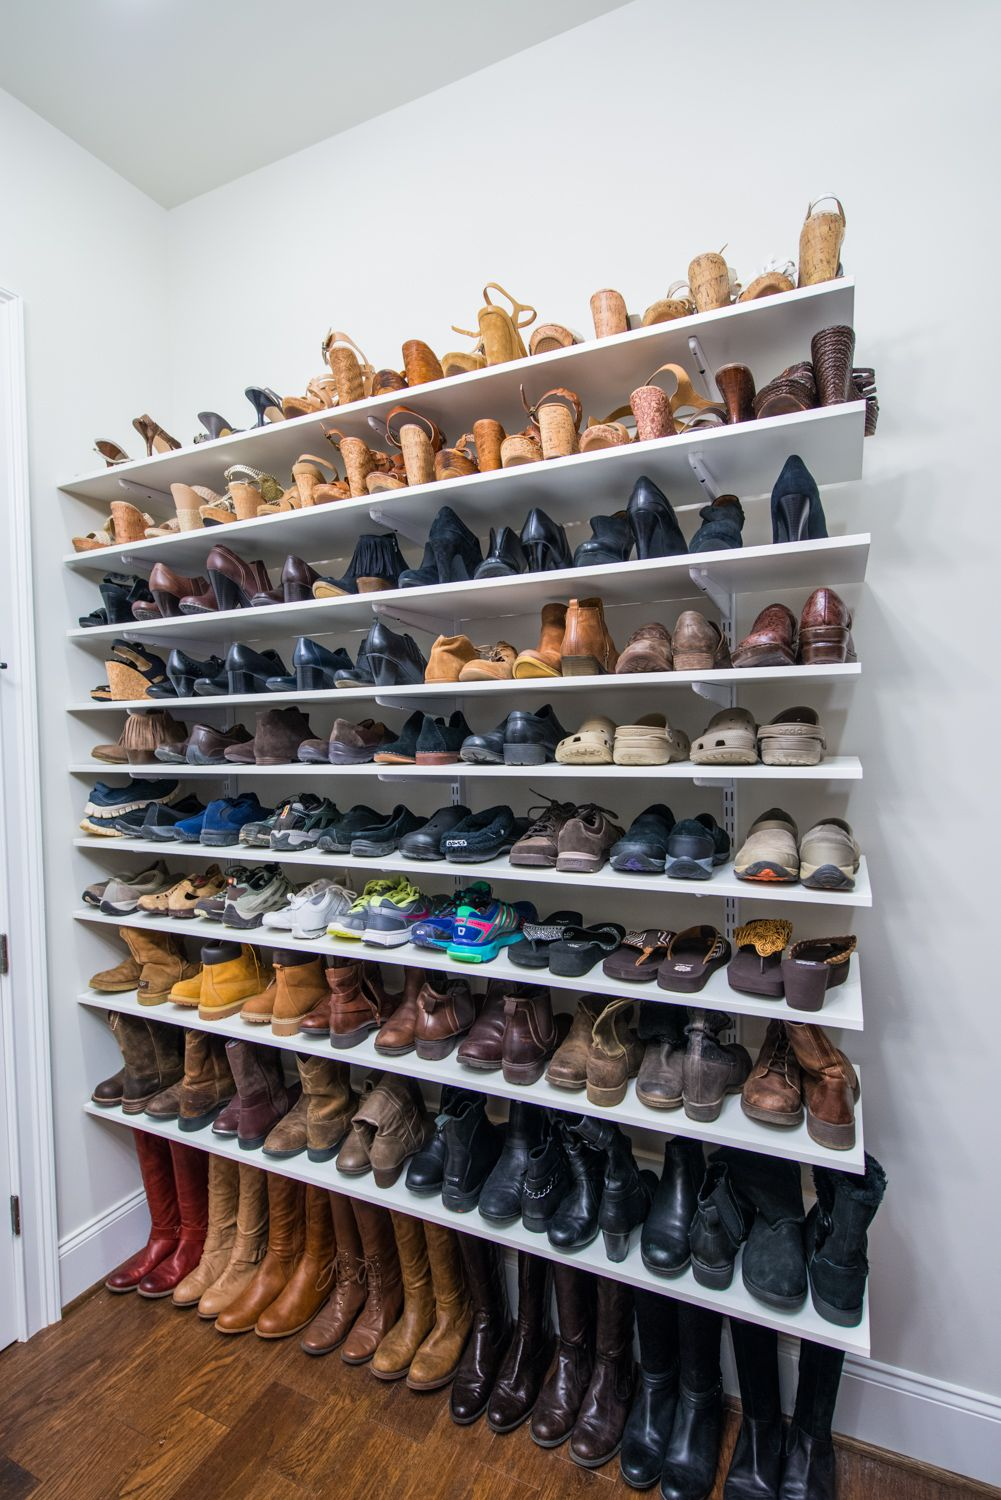 easy ways and organize your shoe collection room diy floating shelves for shoes keep point with adjustable shelving like organized living freedomrail move the seasons change